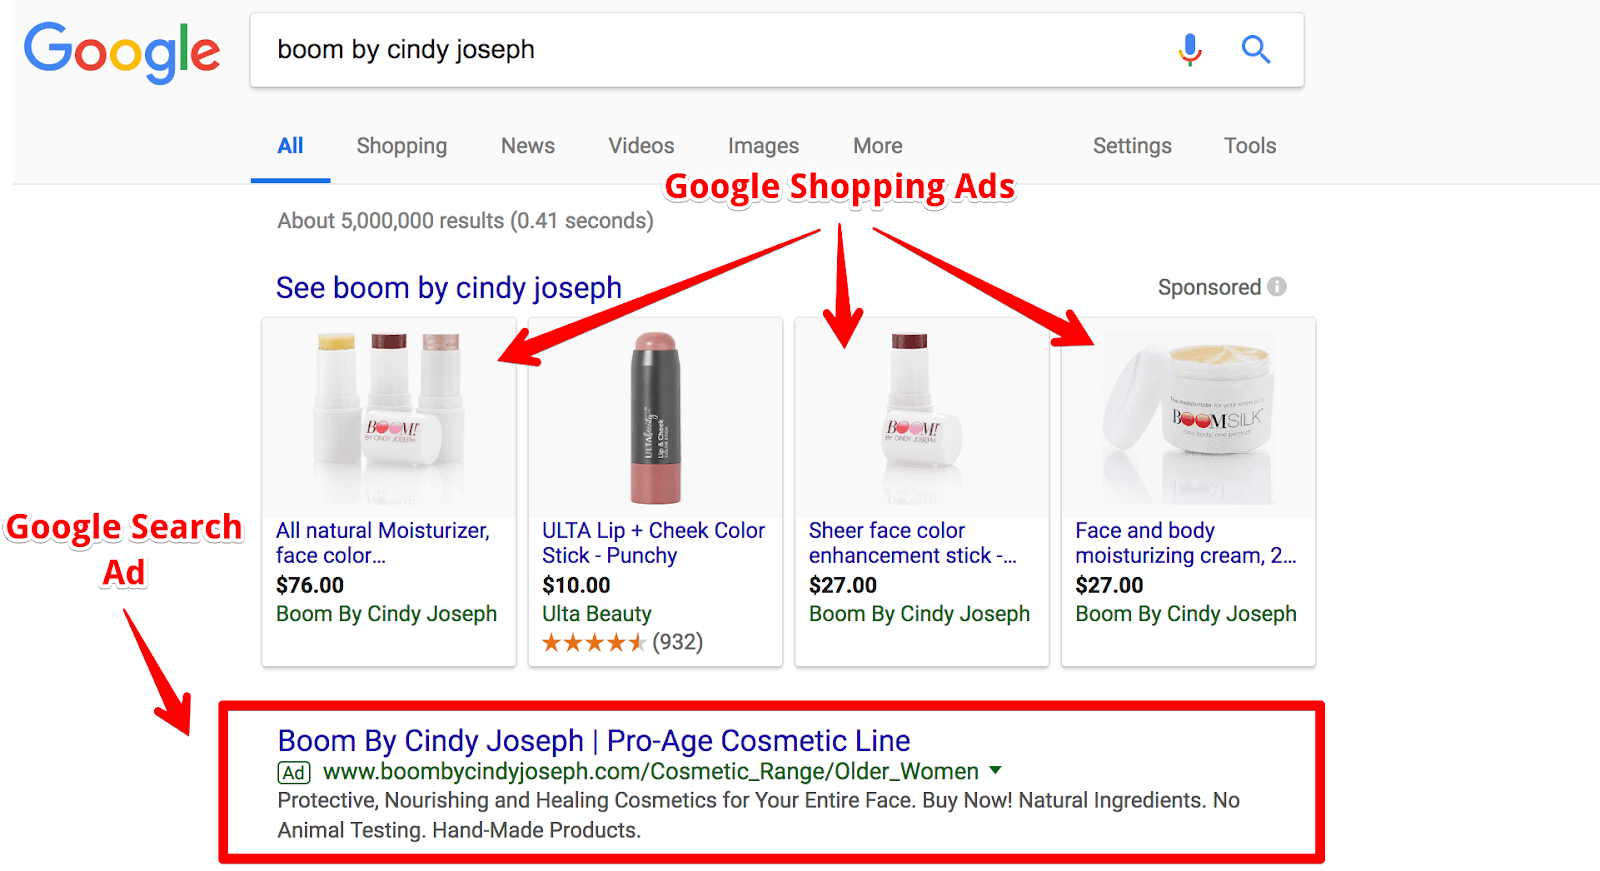 Screenshot showing a google search results page